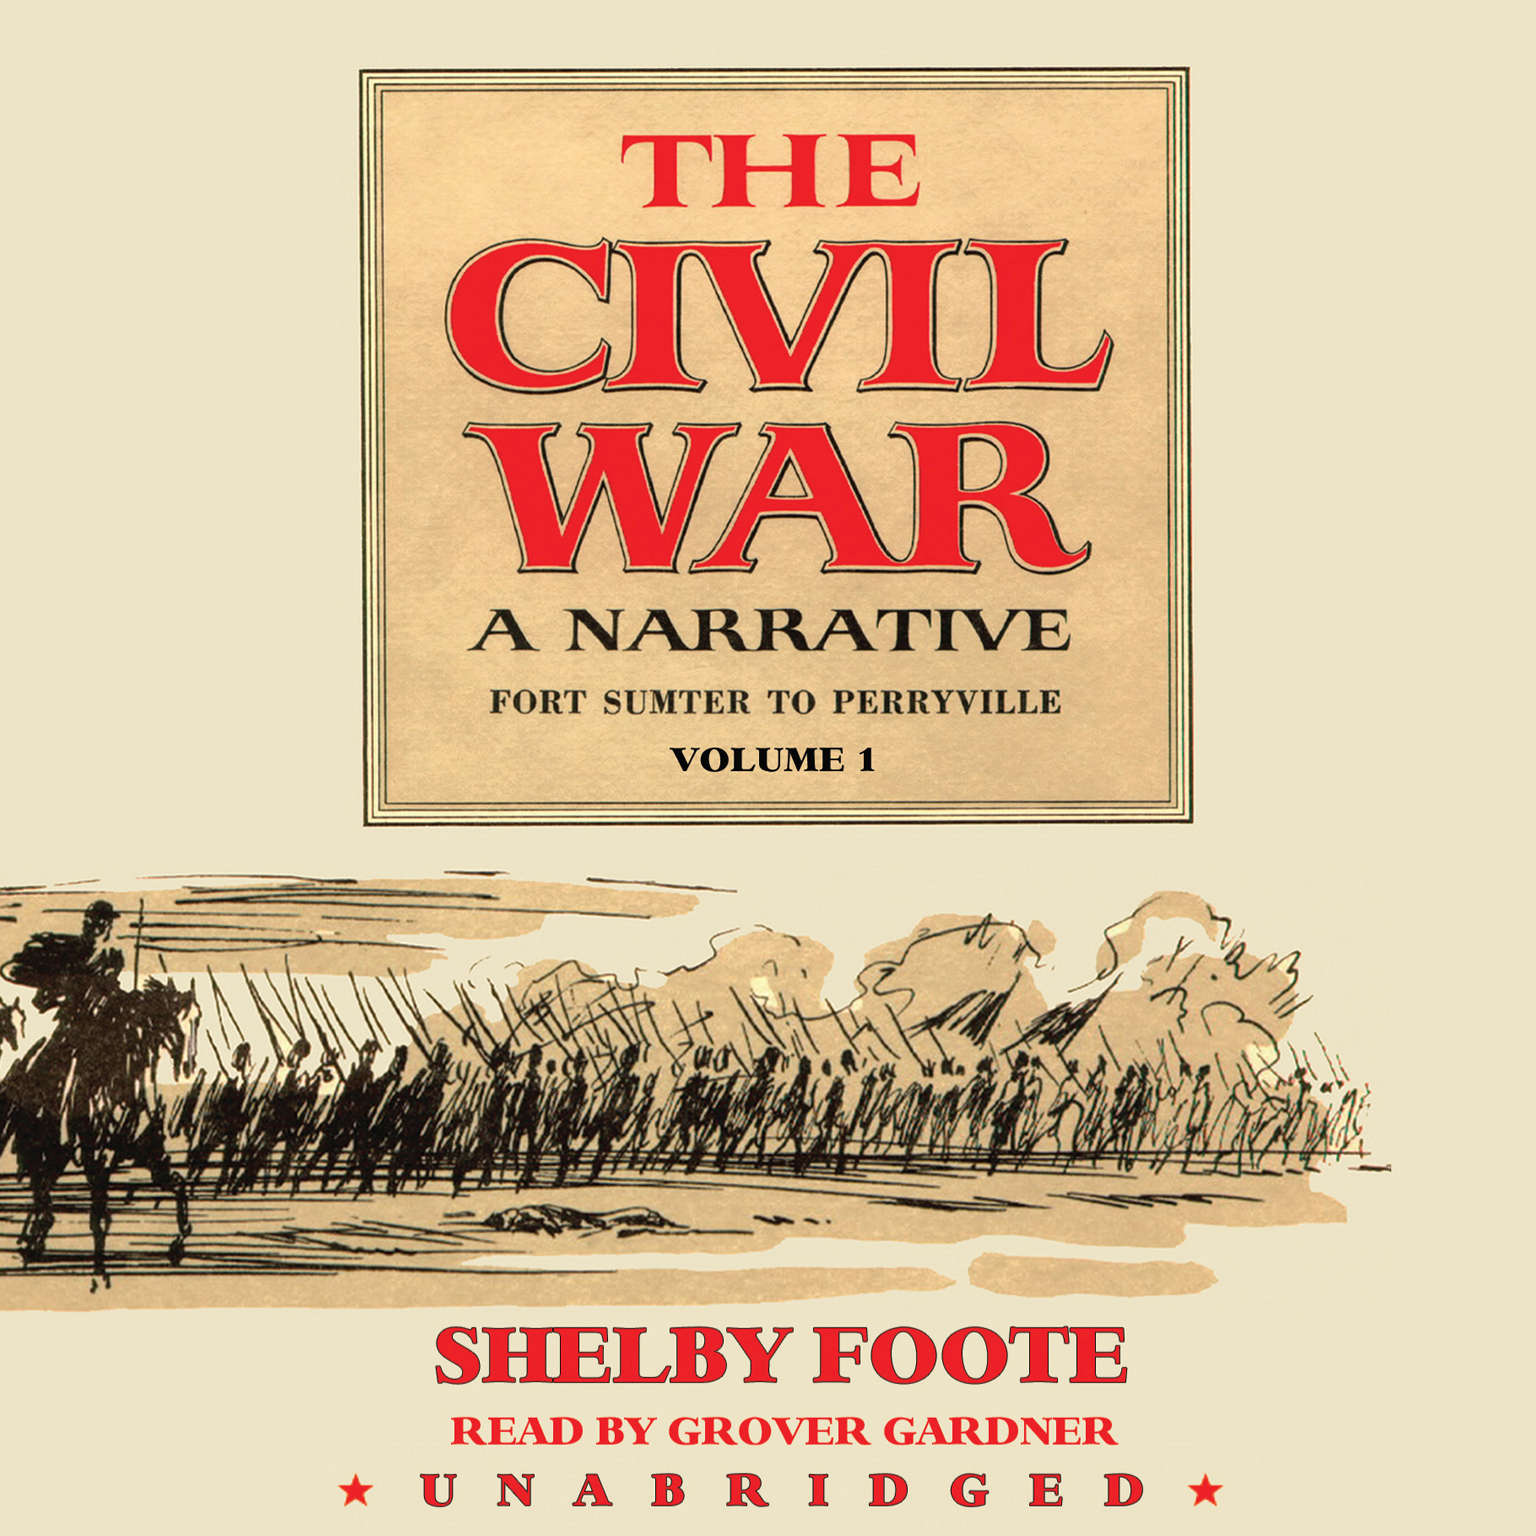 civil war narrative This page discusses the issue of states' rights and its role in the coming of the civil war.